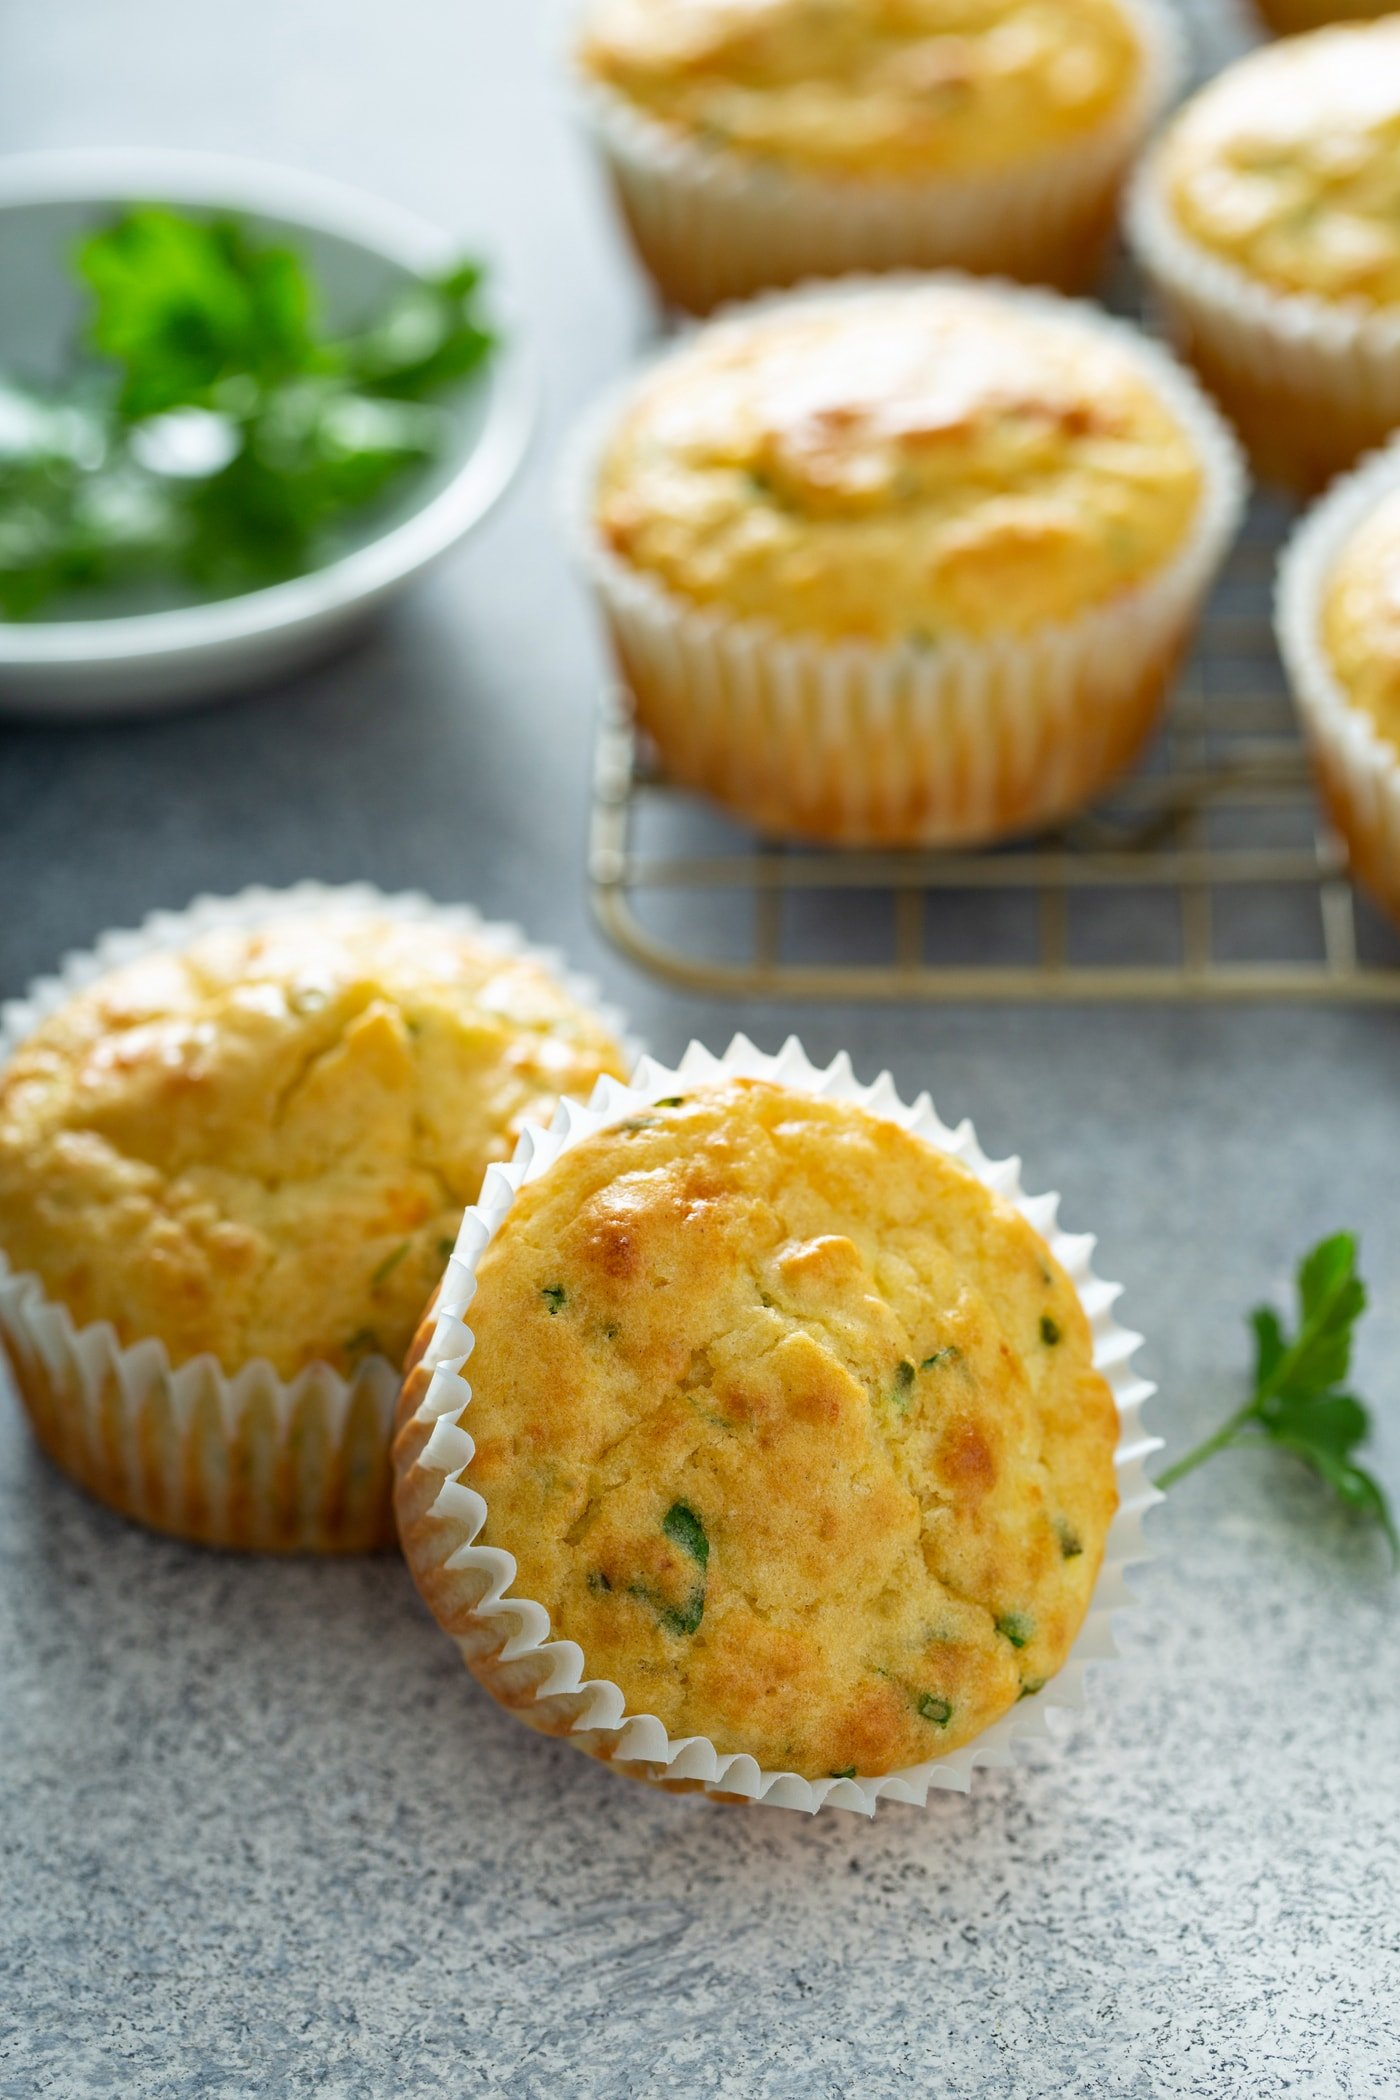 Four baked feta muffins in white paper liners. There is a bowl of chopped parsley and chives in the background.